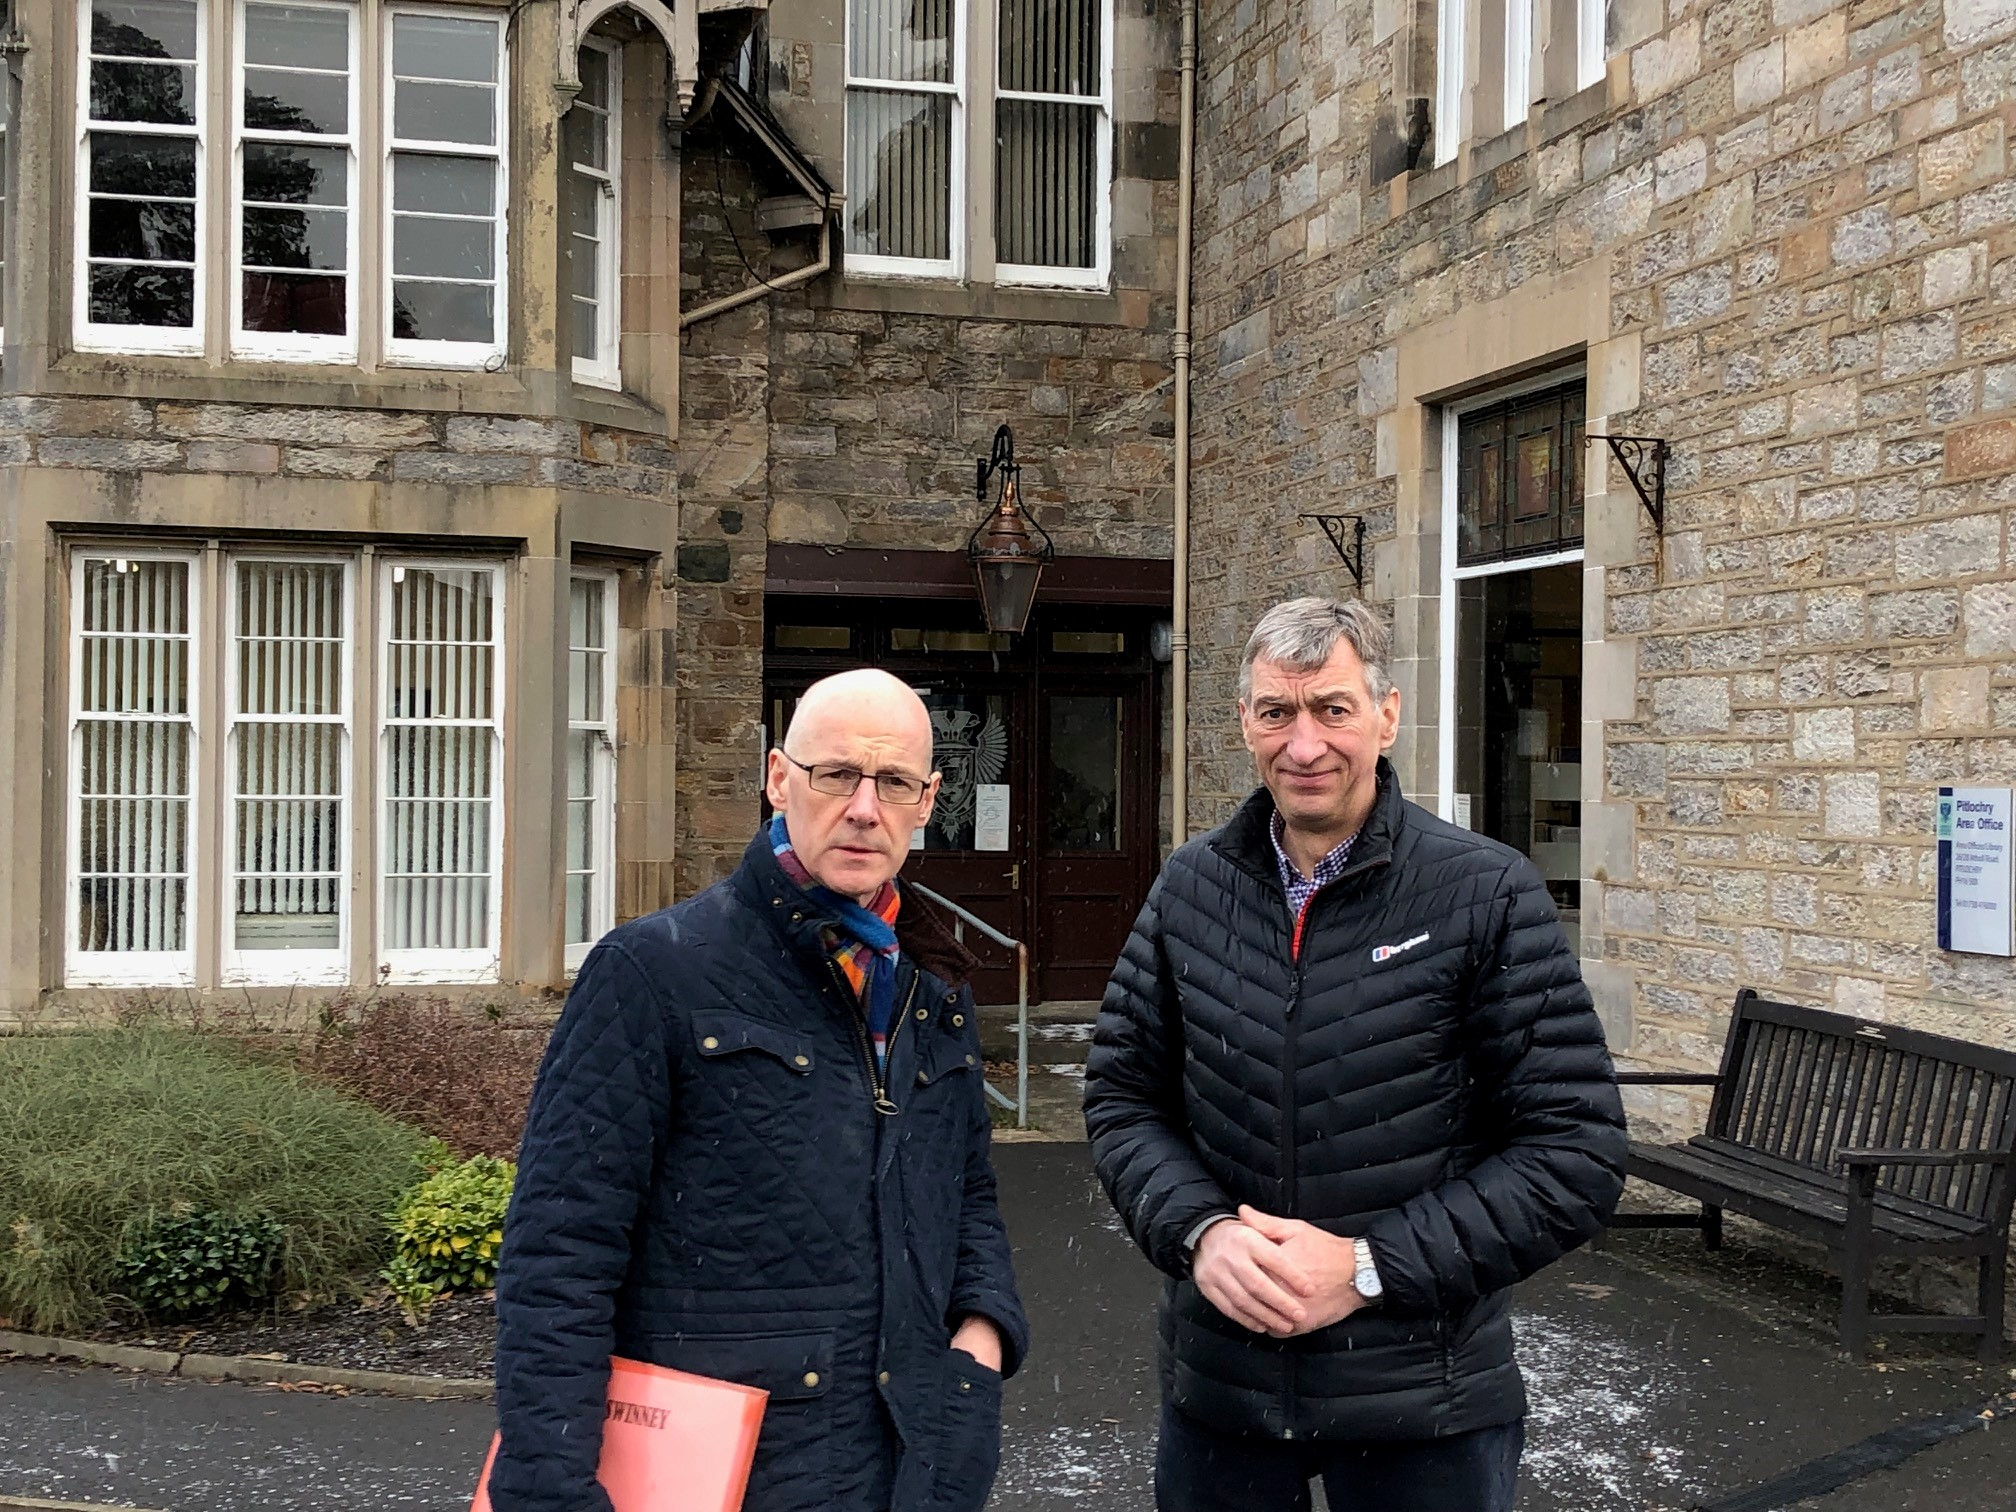 John Swinney MSP and Councillor Mike Williamson have hit out at Perth and Kinross Council for failing to complete an audit of Pitlochry Common Good Fund's properties